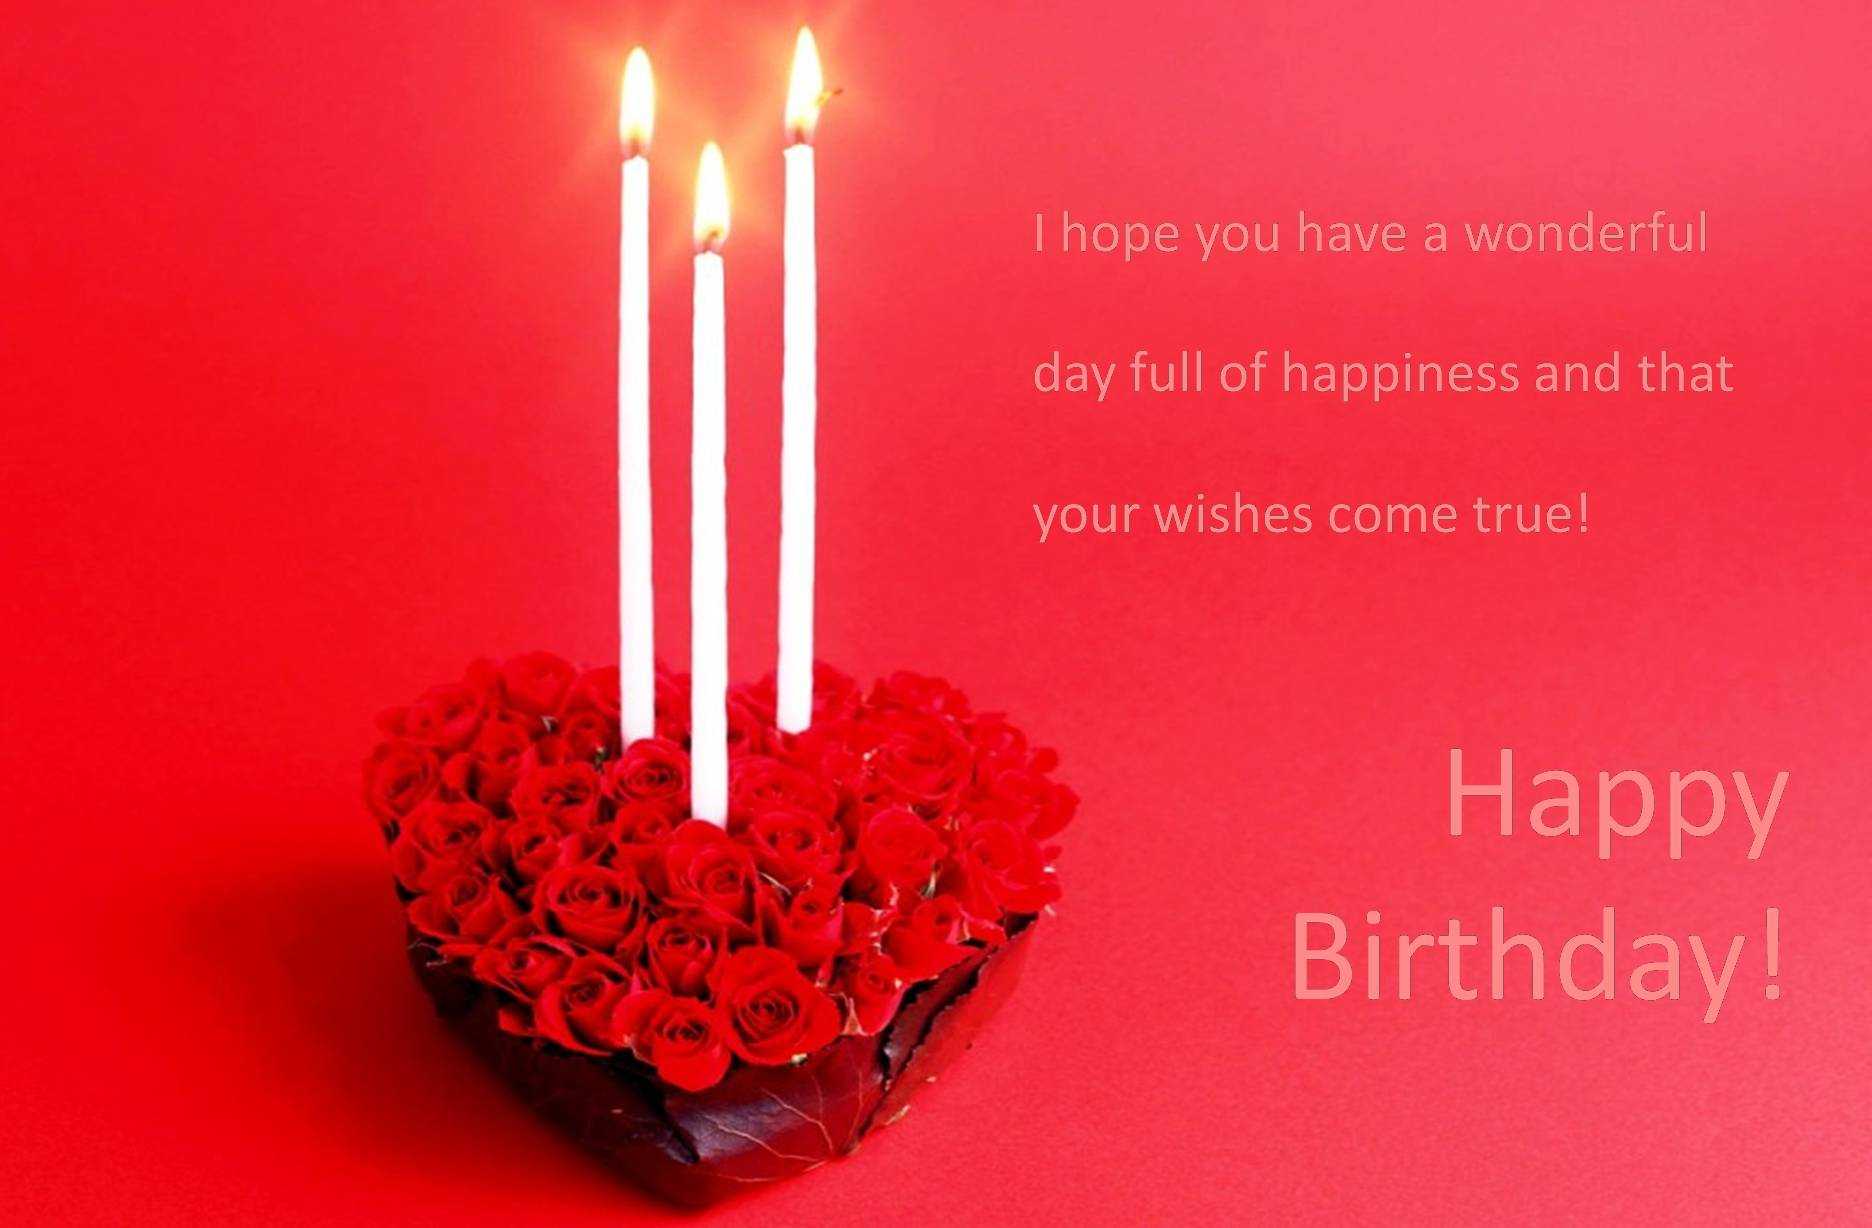 Birthday Wishes Birthday Wishes Images Download For Mobile